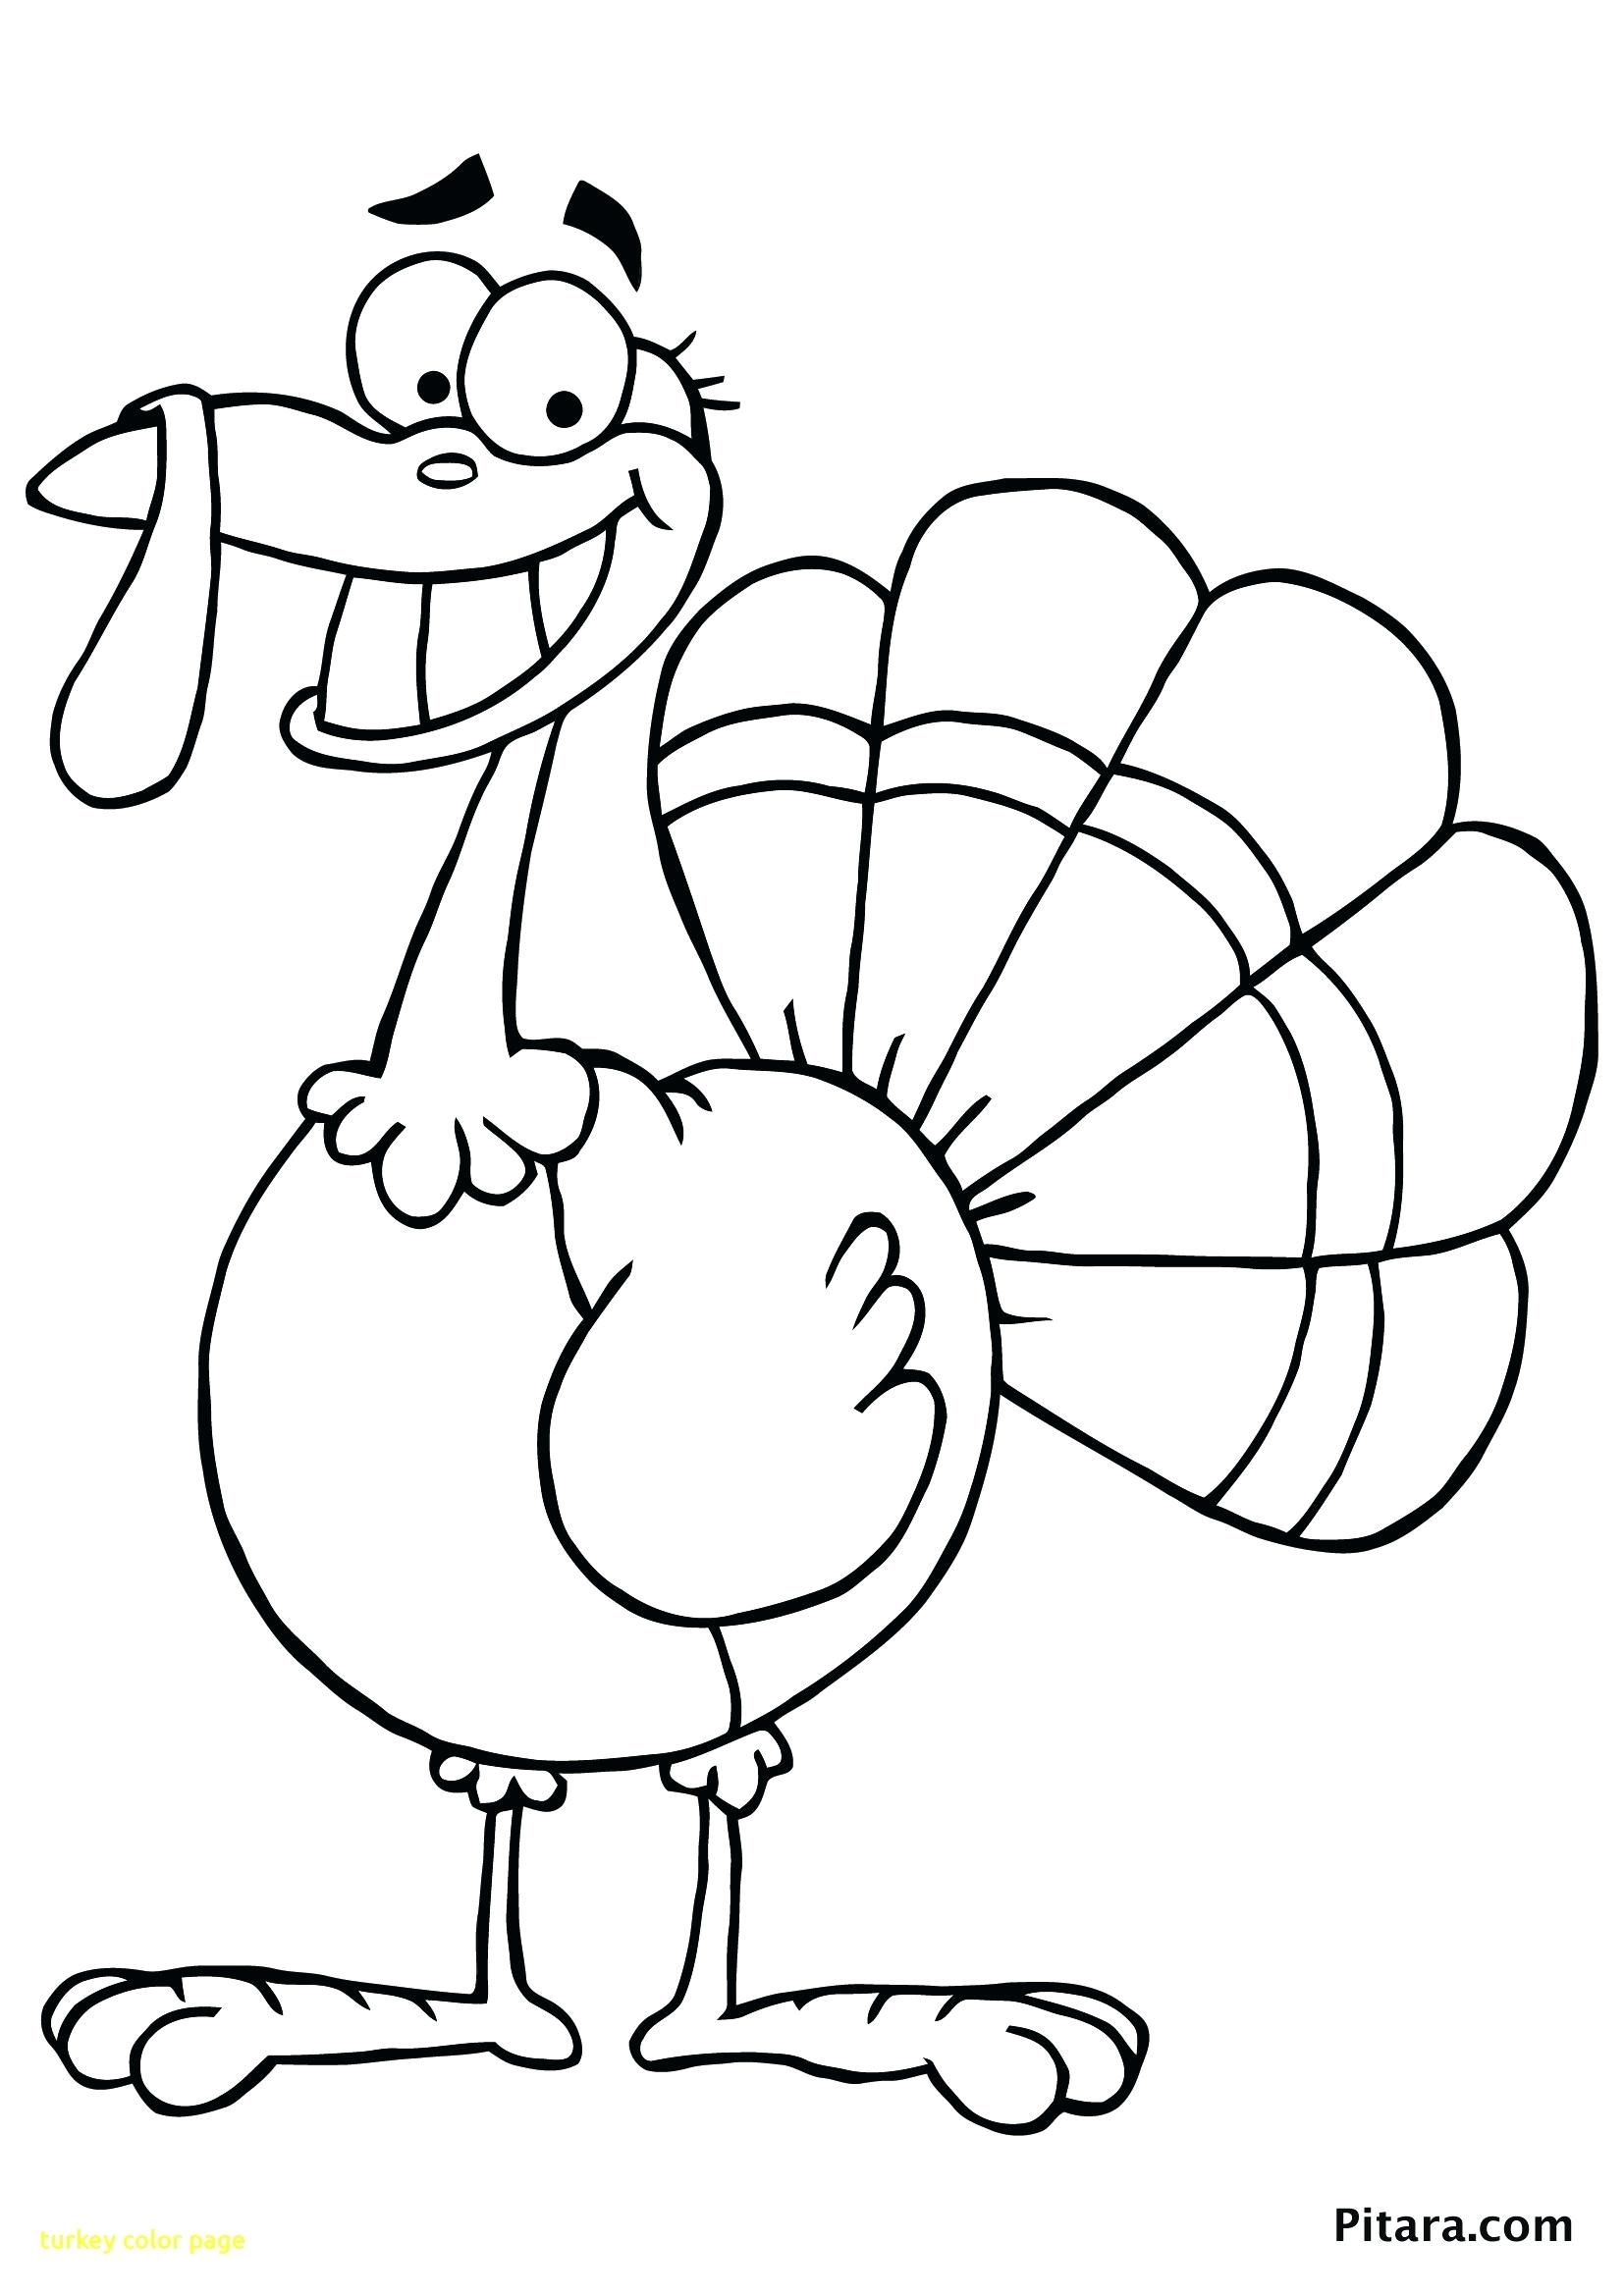 1654x2339 Insider Picture Of A Turkey To Color Page With Thanksgiving Turkey